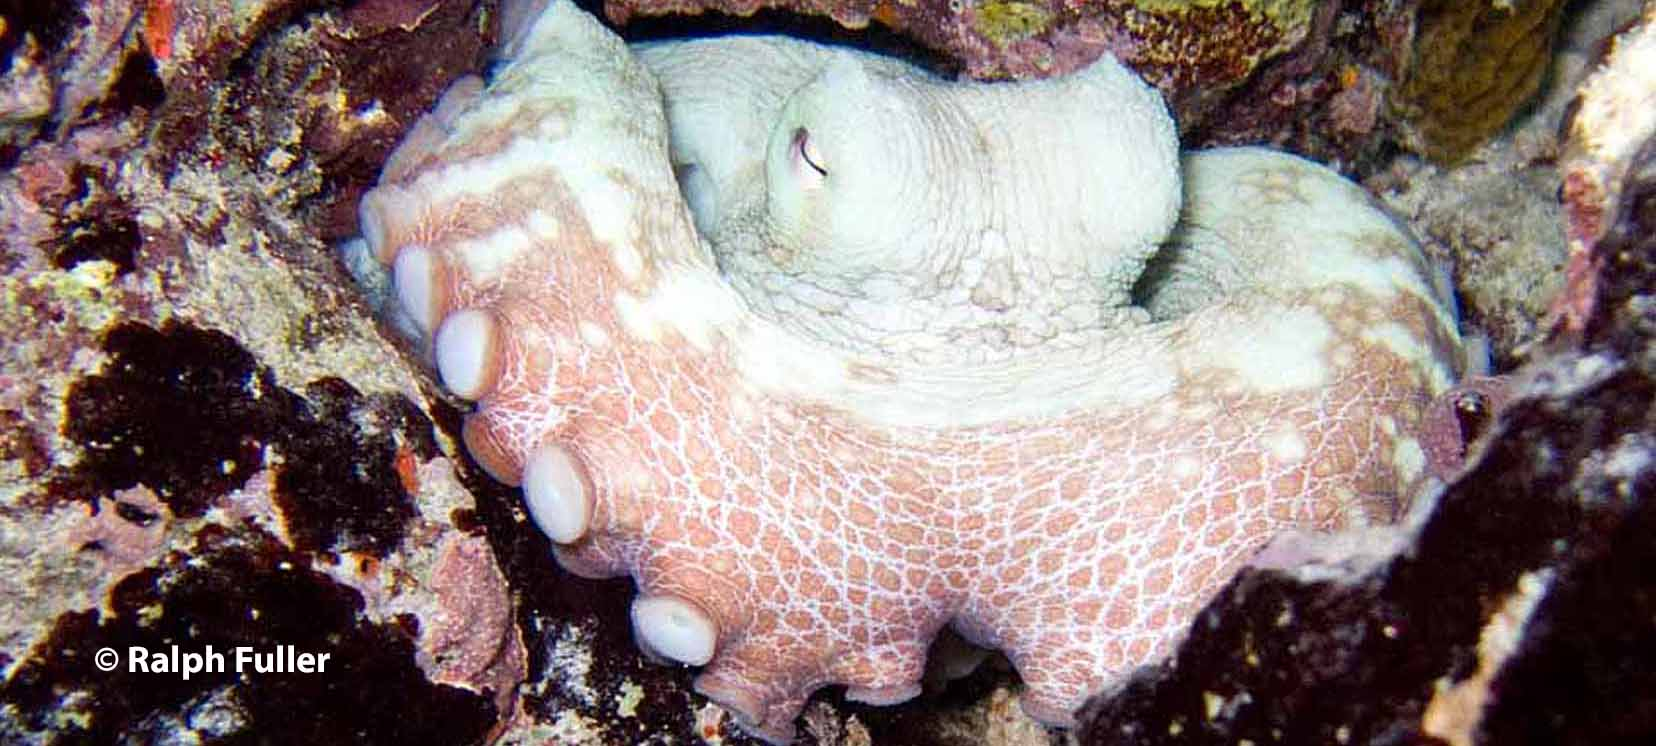 urban octopuses conservation challenges in a changing climate